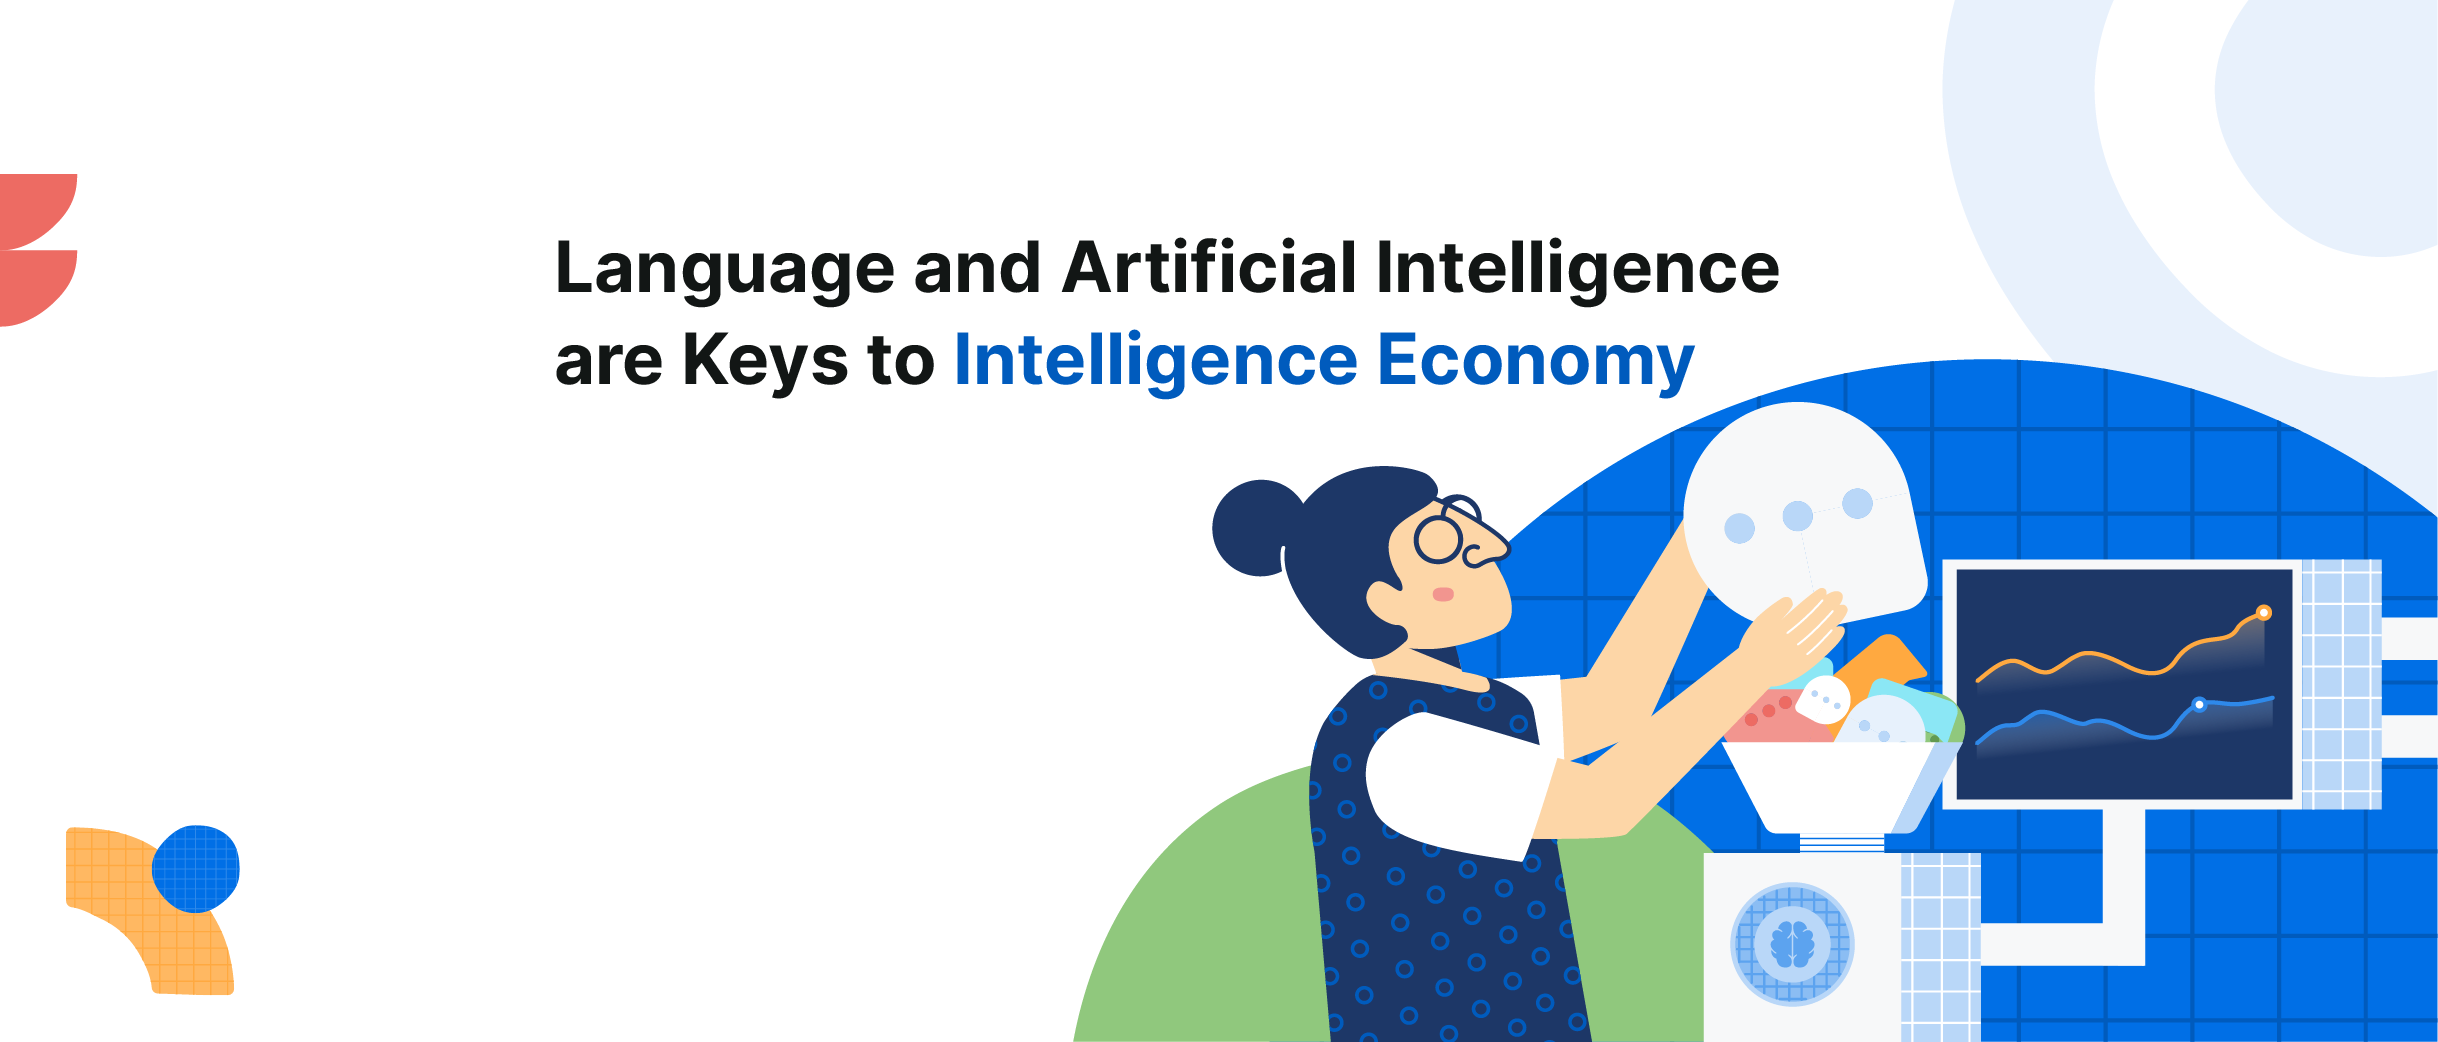 Language is the most powerful tool that humans have, and language is the key to intelligence economy.